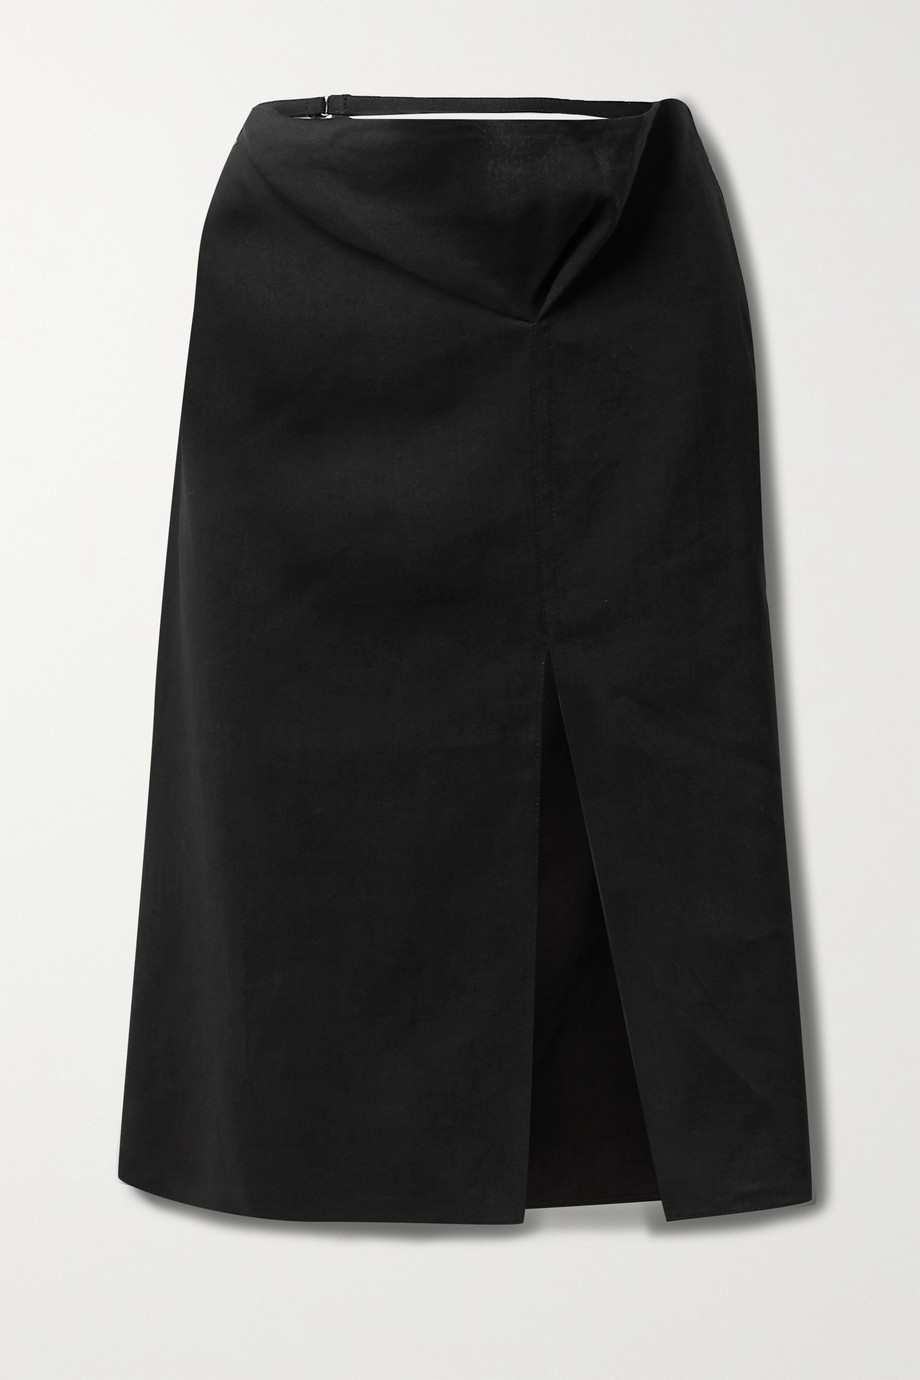 JACQUEMUS Cutout hemp-blend skirt